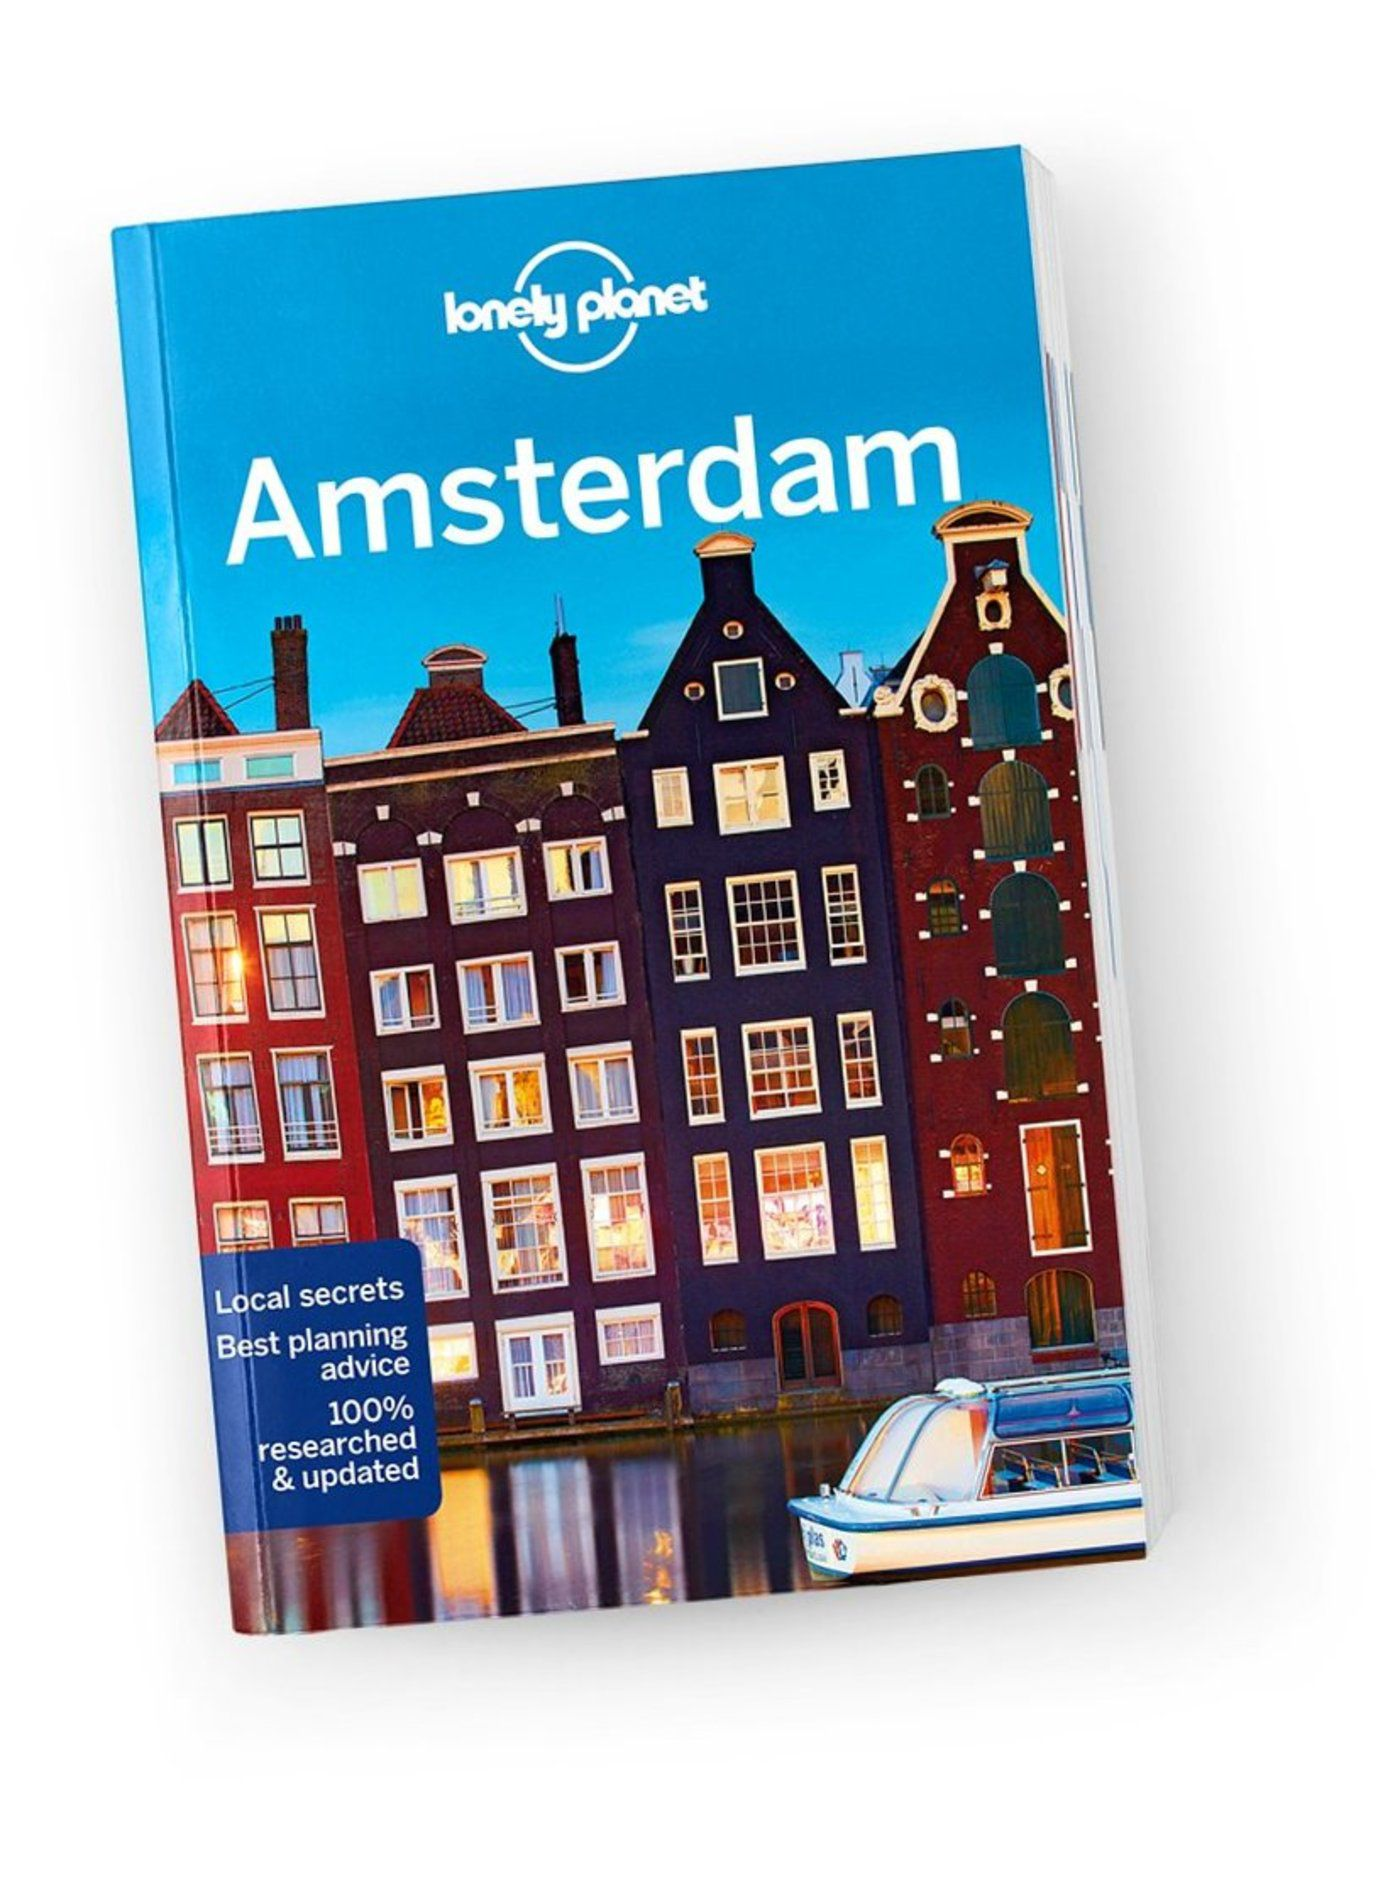 Ebook Travel Guides On Twitter Download The New Lonely Planet Amsterdam Medieval Centre Red Light District Pdf Chapter Https T Co Q8fl3ydr6s Lp Travel Https T Co Snhirm3ukq